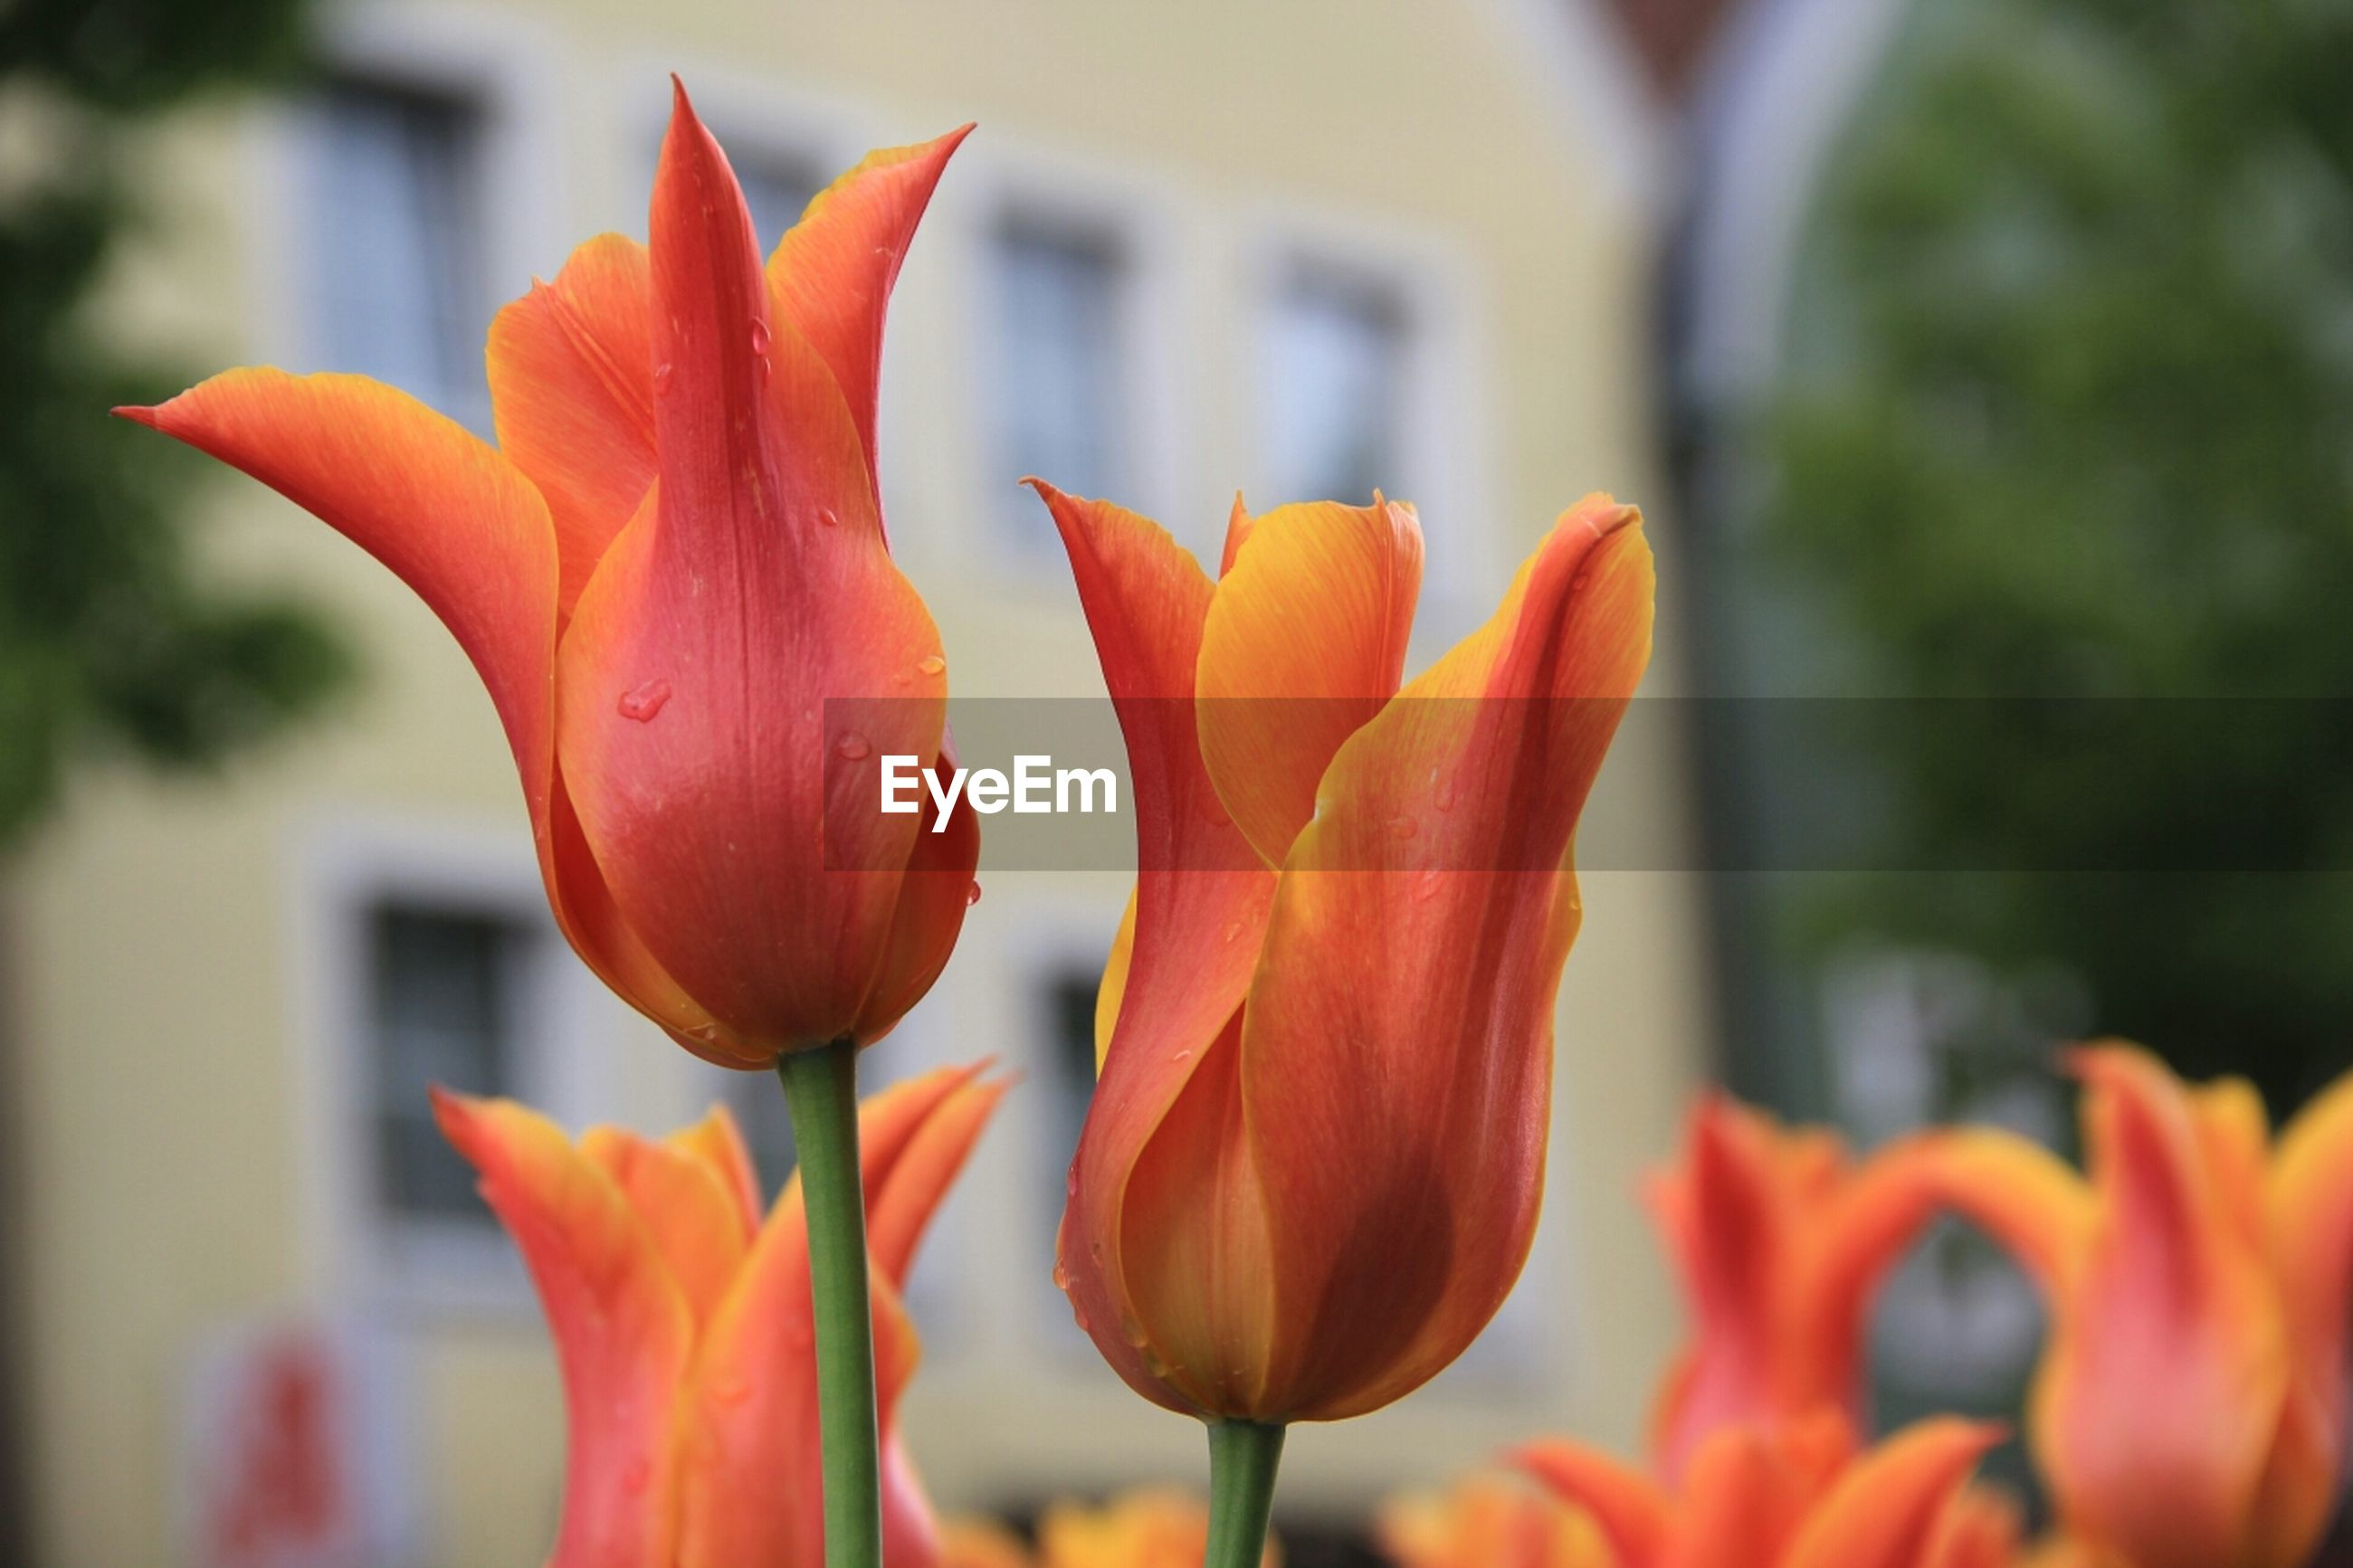 flower, petal, flower head, fragility, freshness, growth, focus on foreground, beauty in nature, close-up, red, tulip, blooming, nature, plant, orange color, stem, day, in bloom, no people, blossom